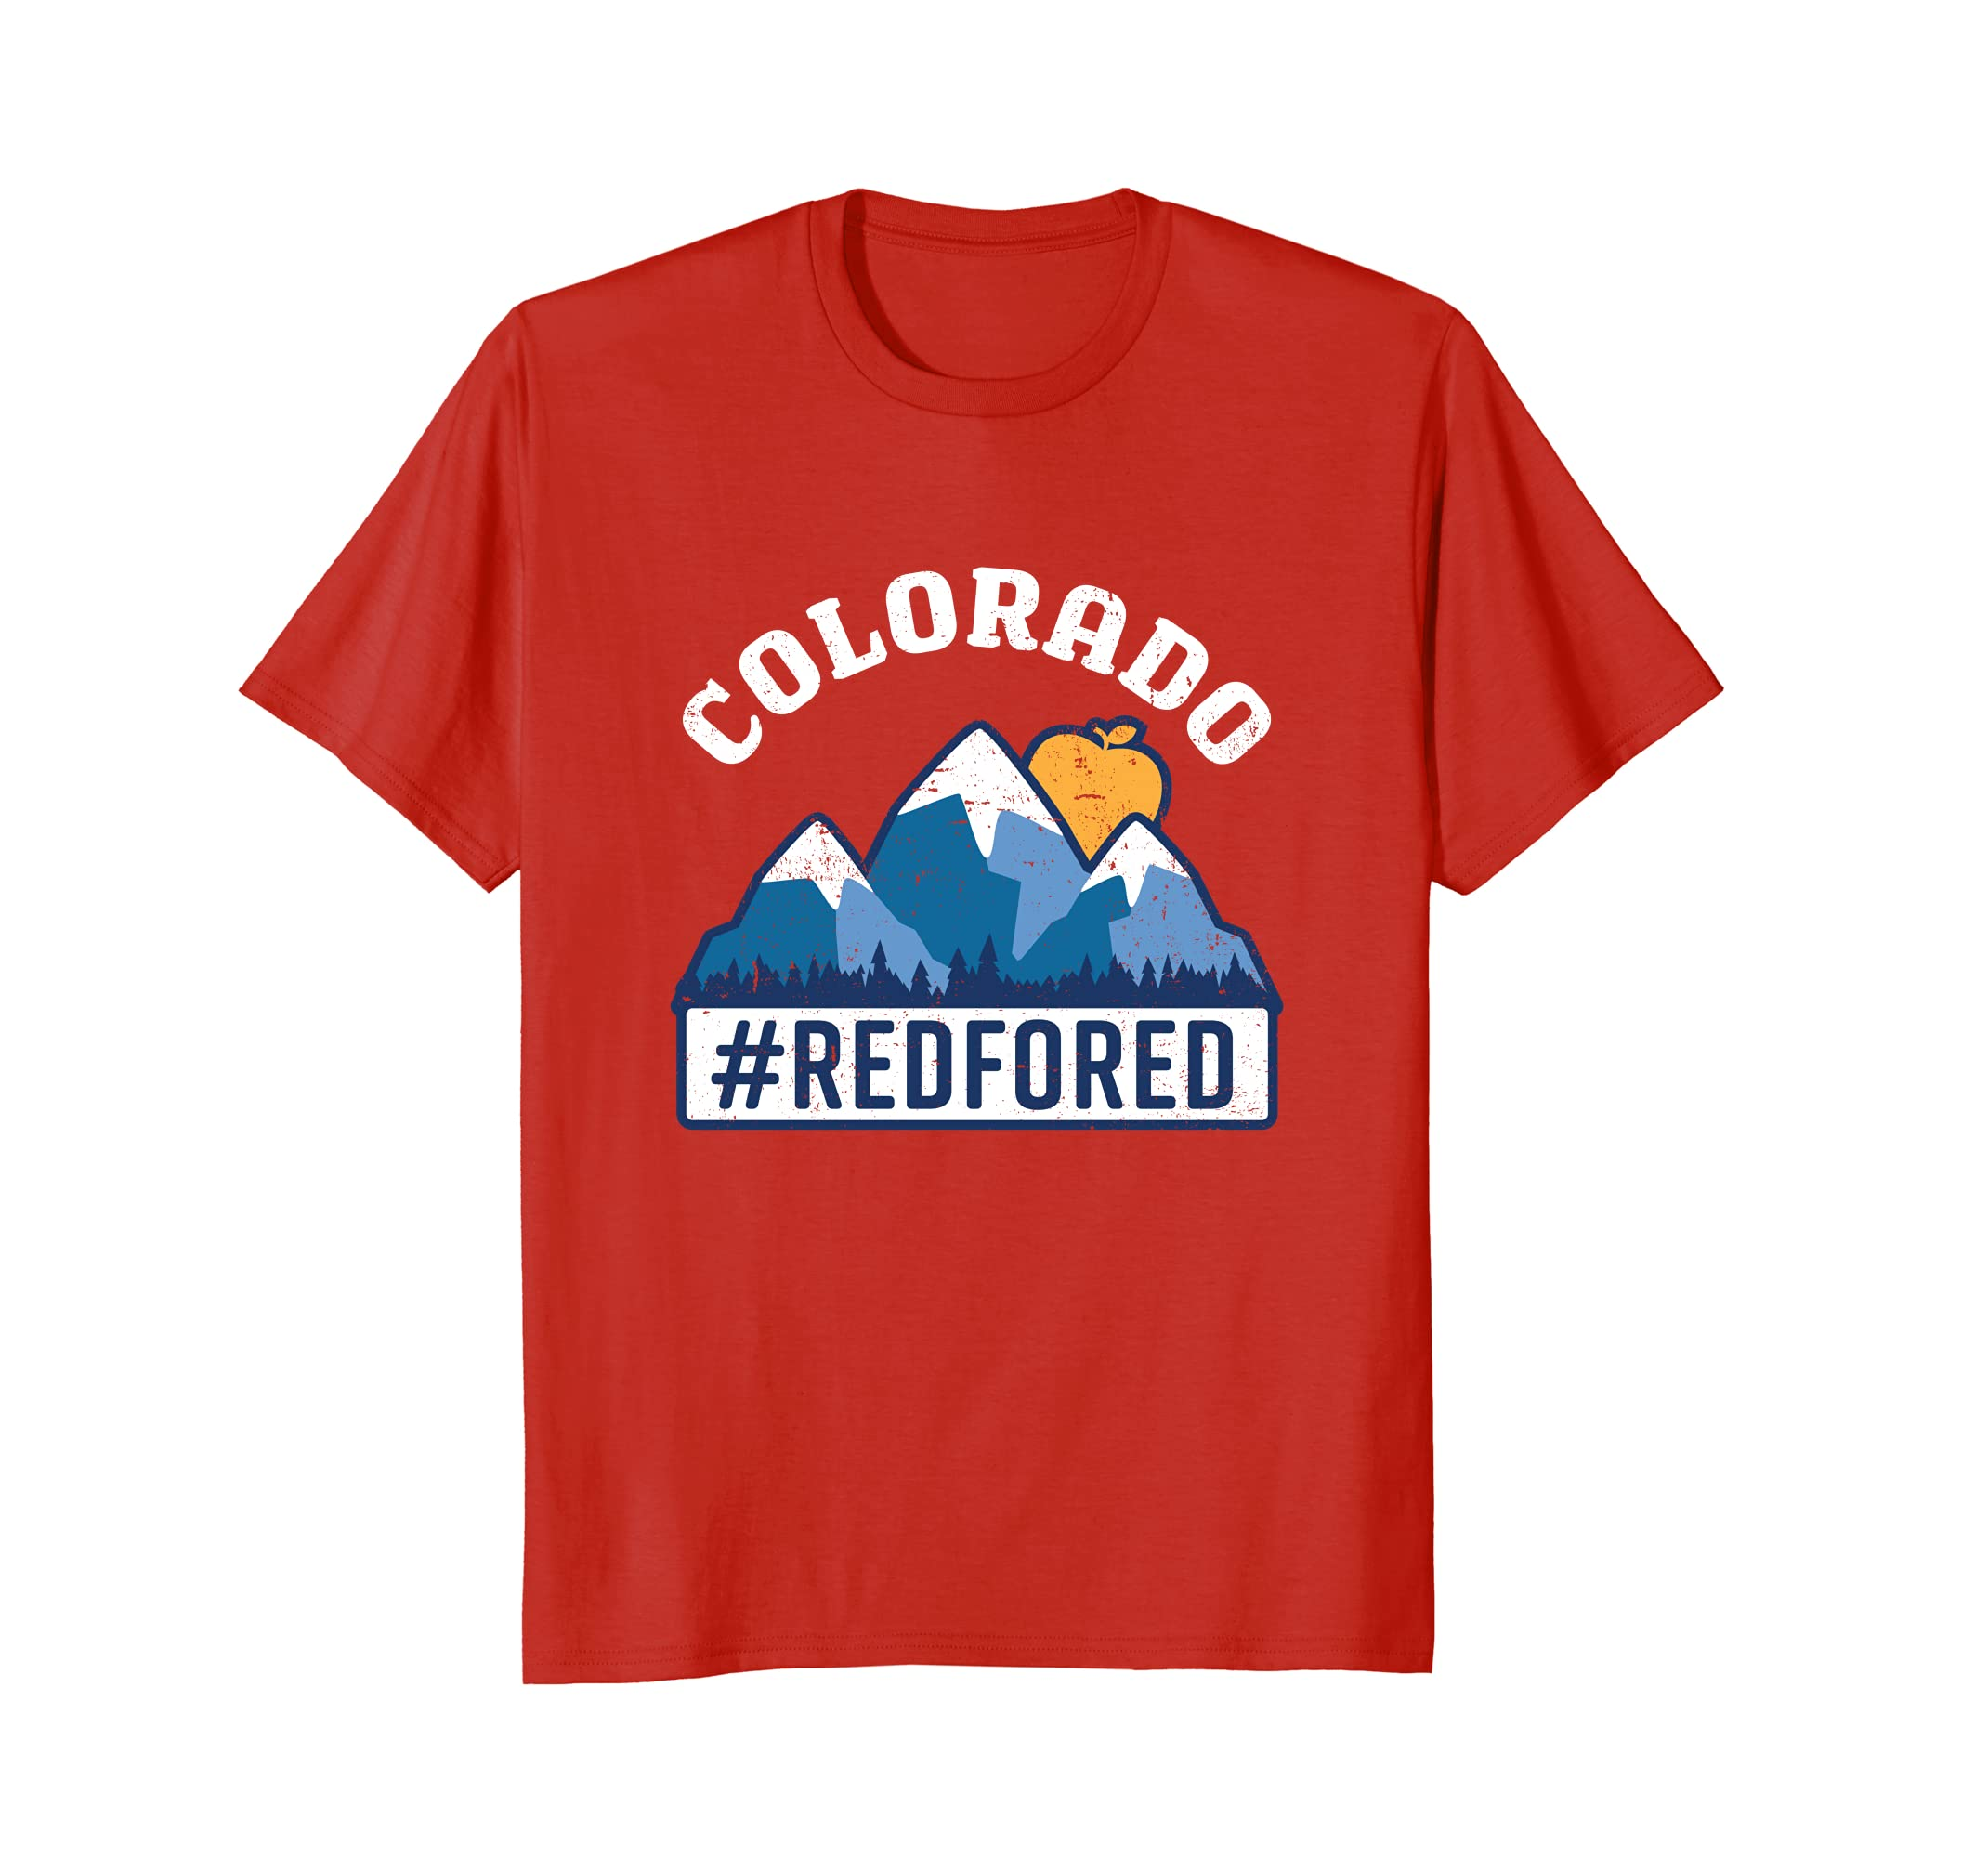 Red For Ed Shirt  Colorado Teacher Protest Walkout Tshirt